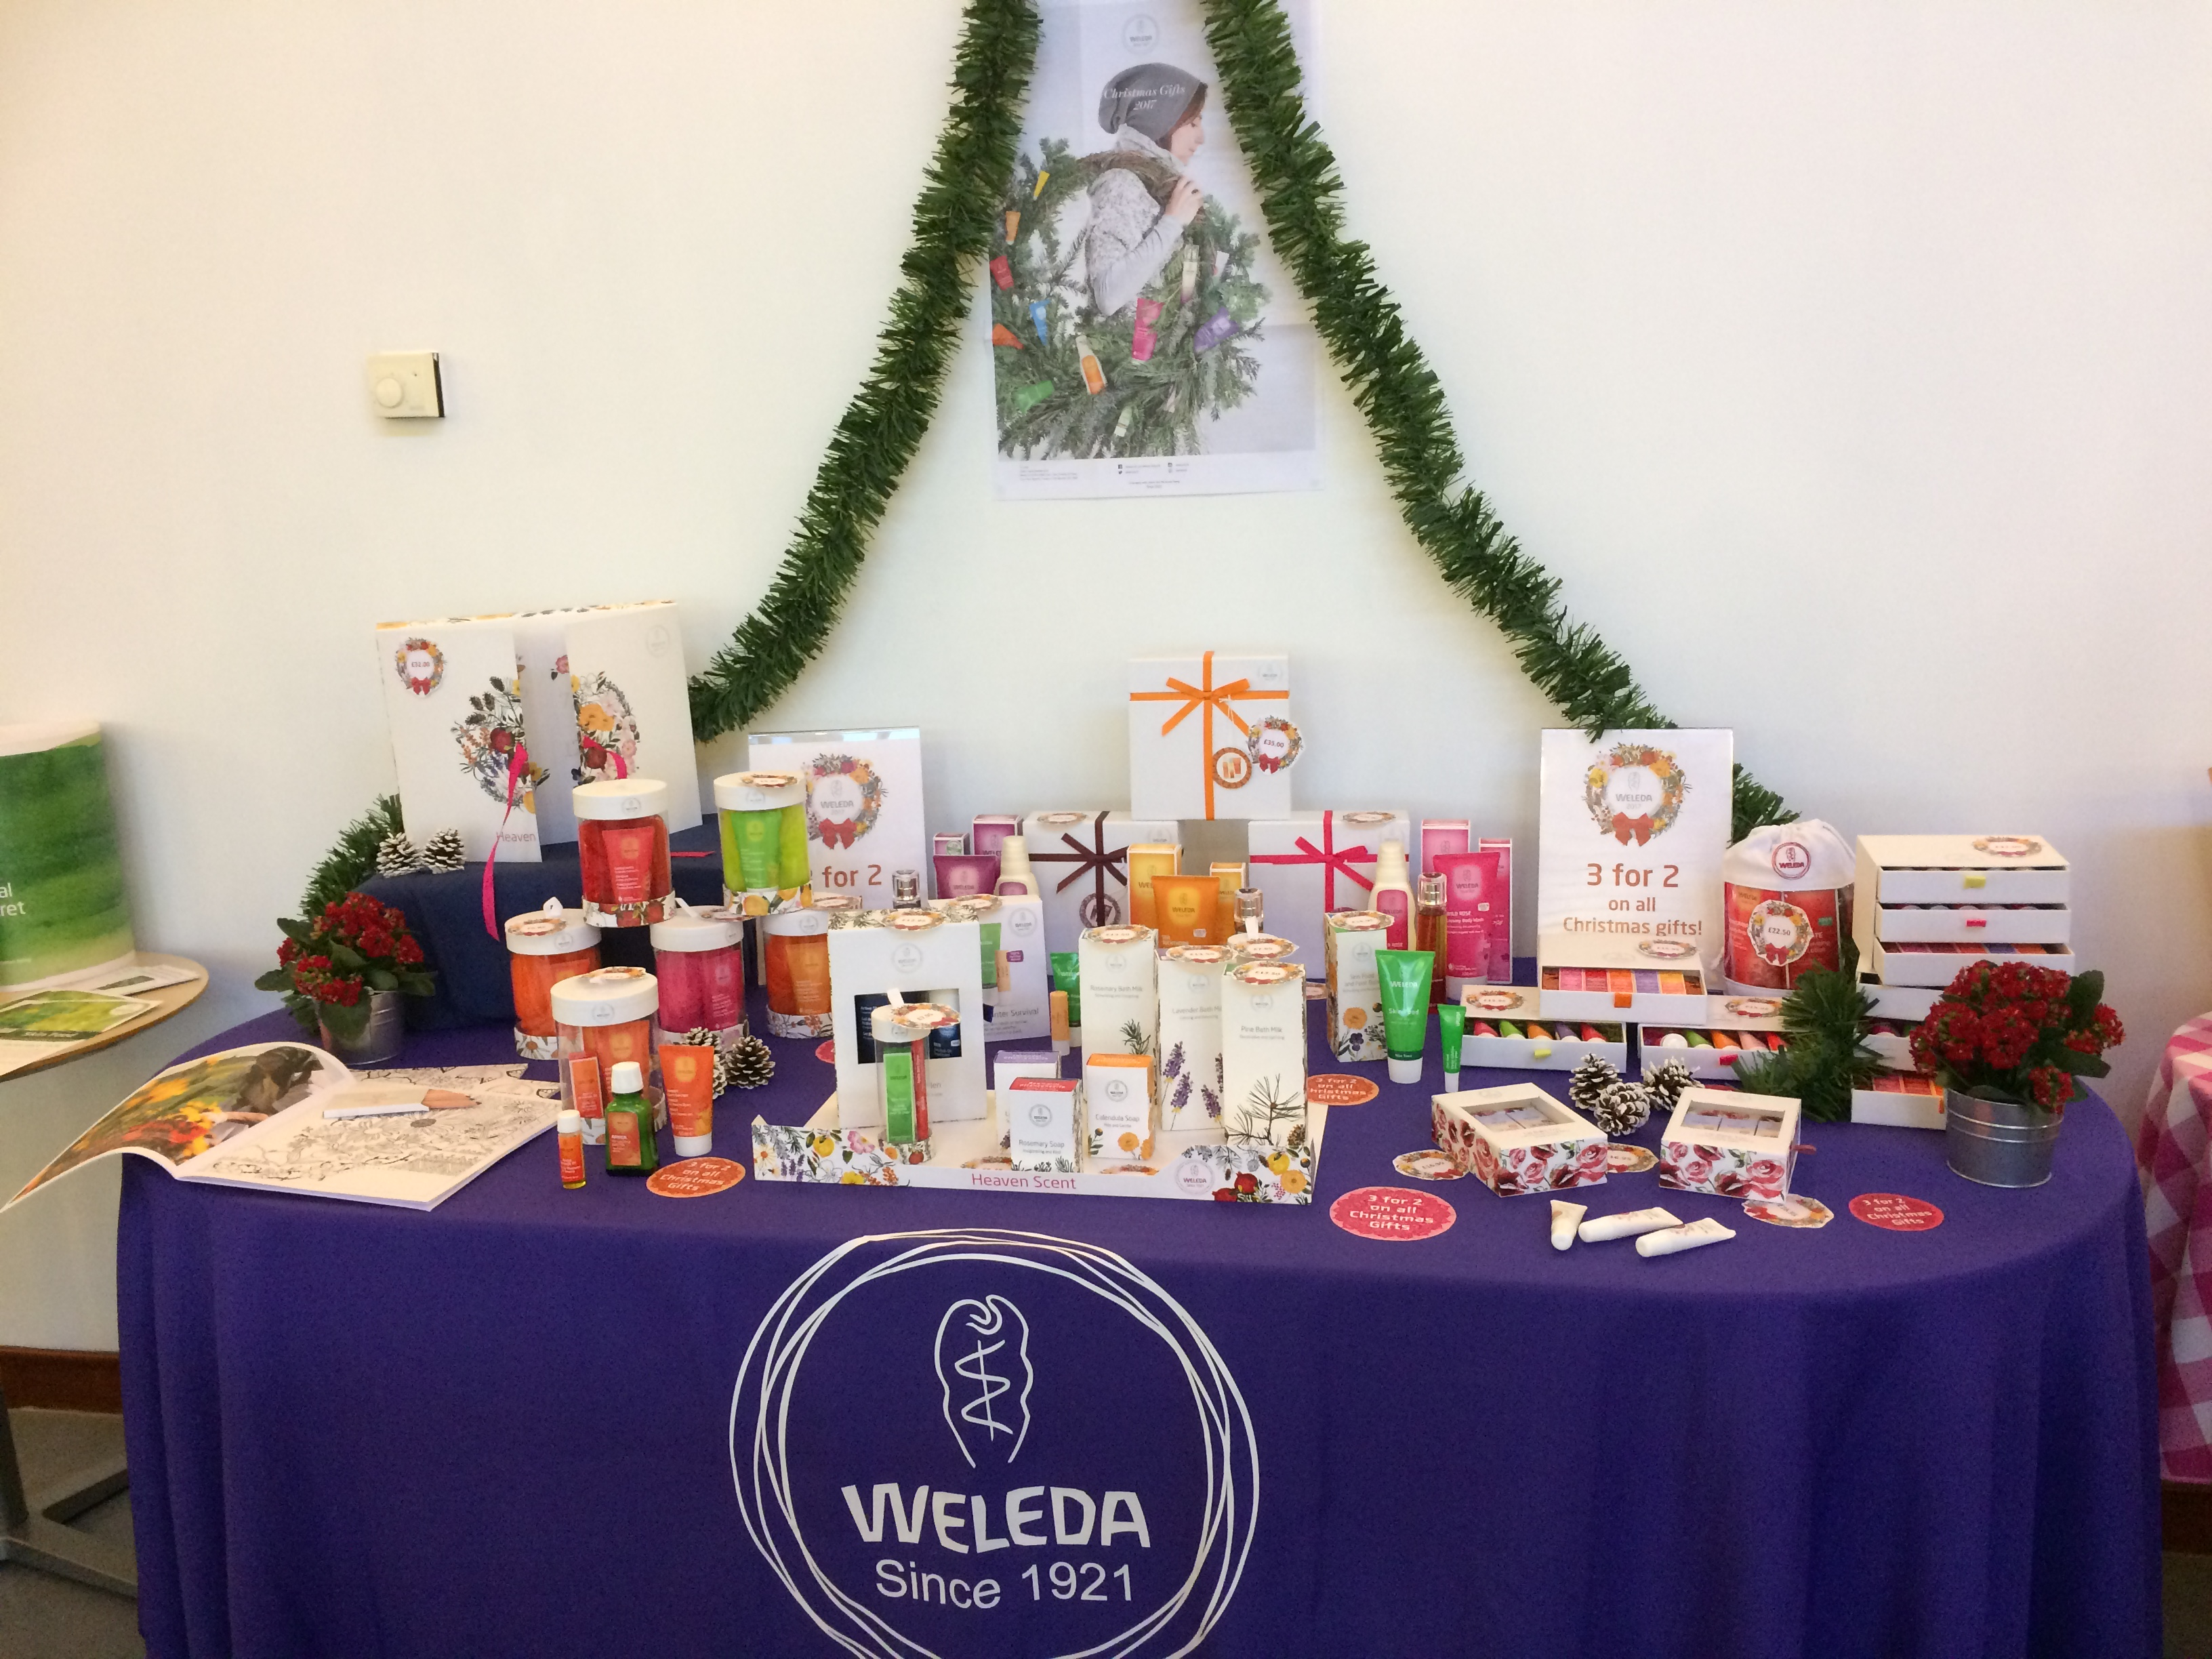 The table of gifts at Weleda